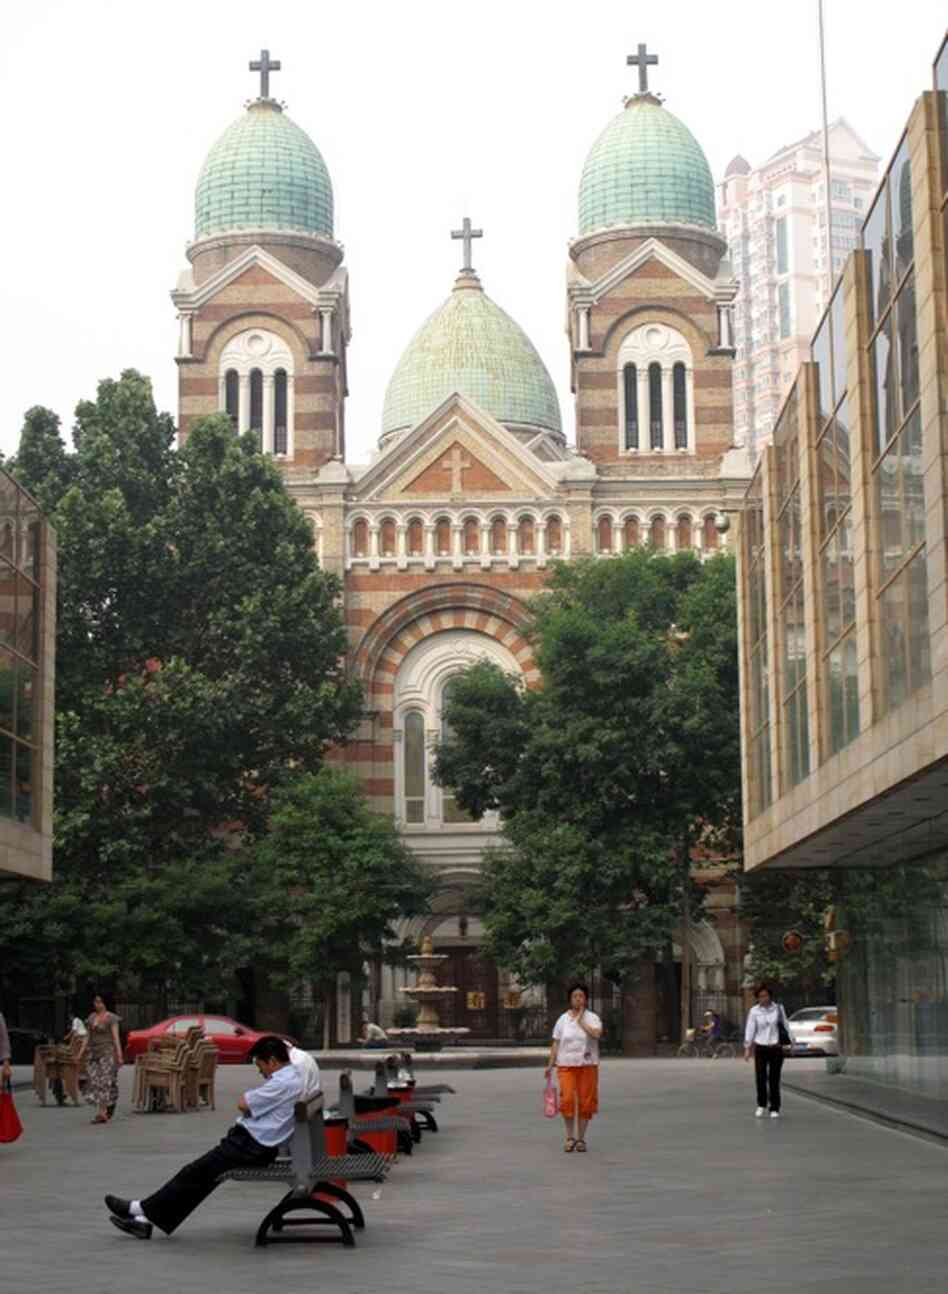 At Xikai Cathedral in Tianjin, 85 miles southeast of Beijing, the Rev. Zhang Liang says a letter issued by Pope Benedict XVI to Chinese Catholics three years ago was a turning point in the move toward reconciliation.